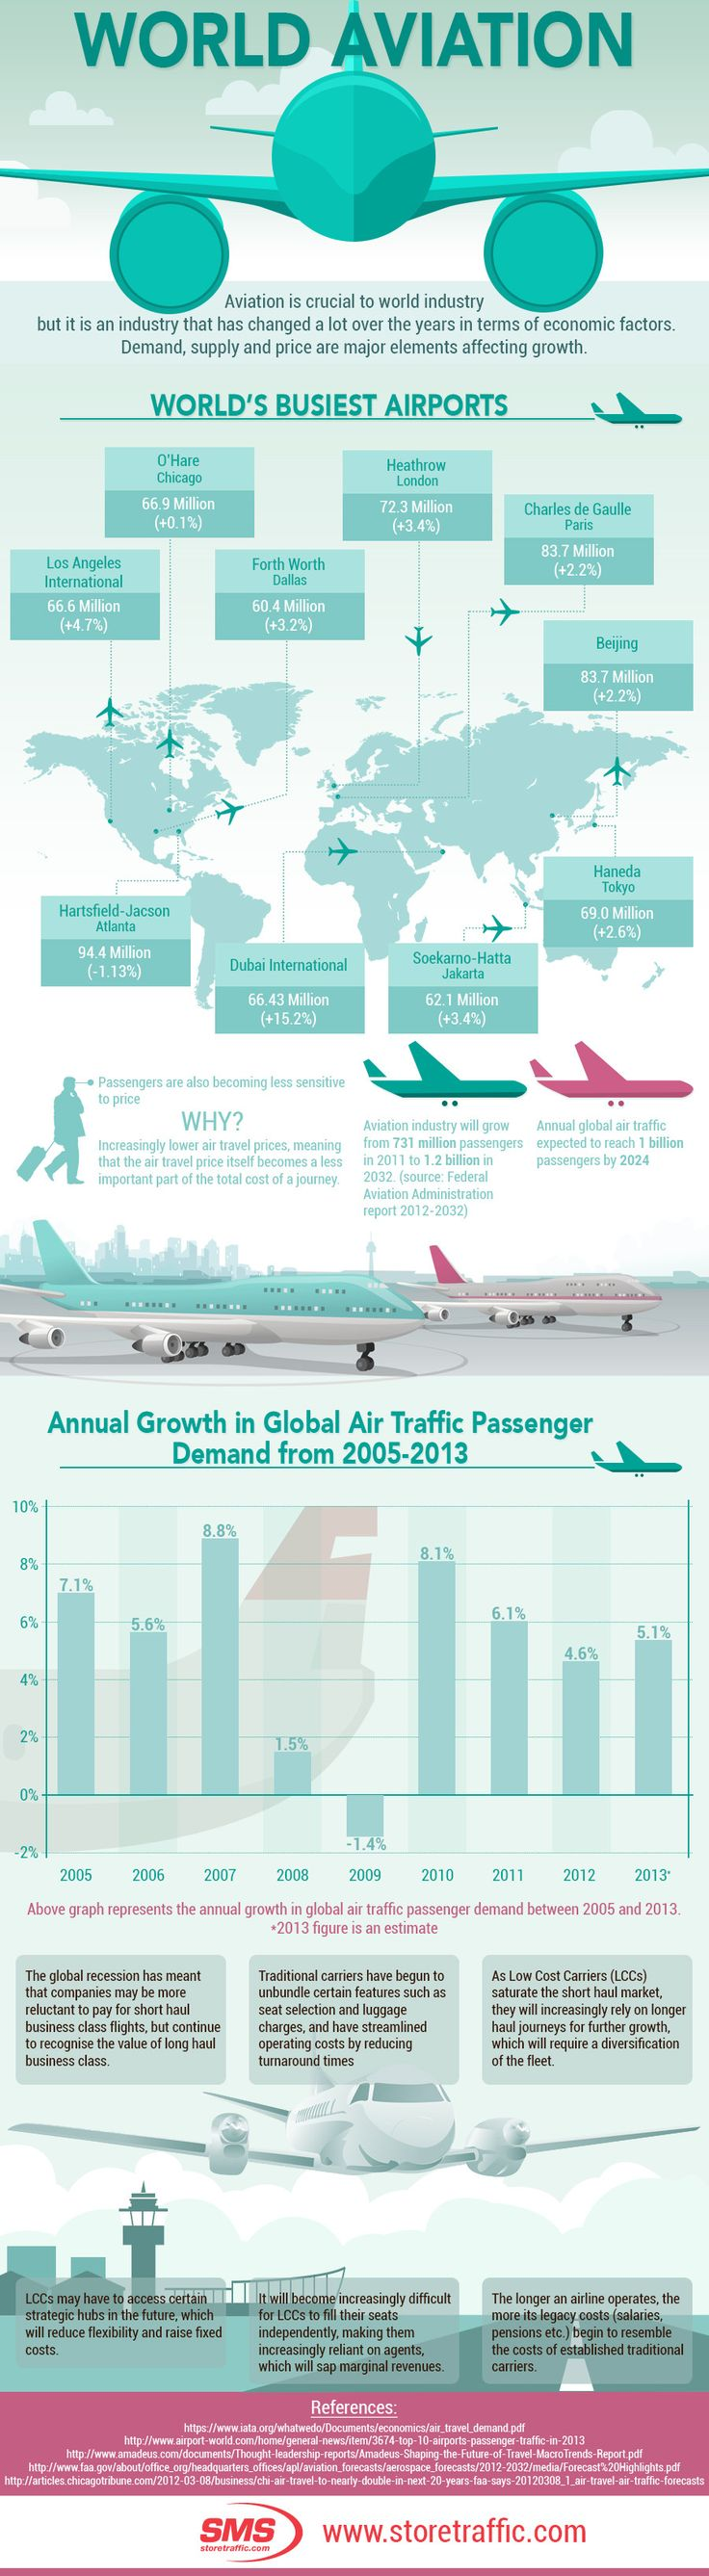 World Aviation #infographic #WorldAviation #TrafficCounter #PeopleCounters